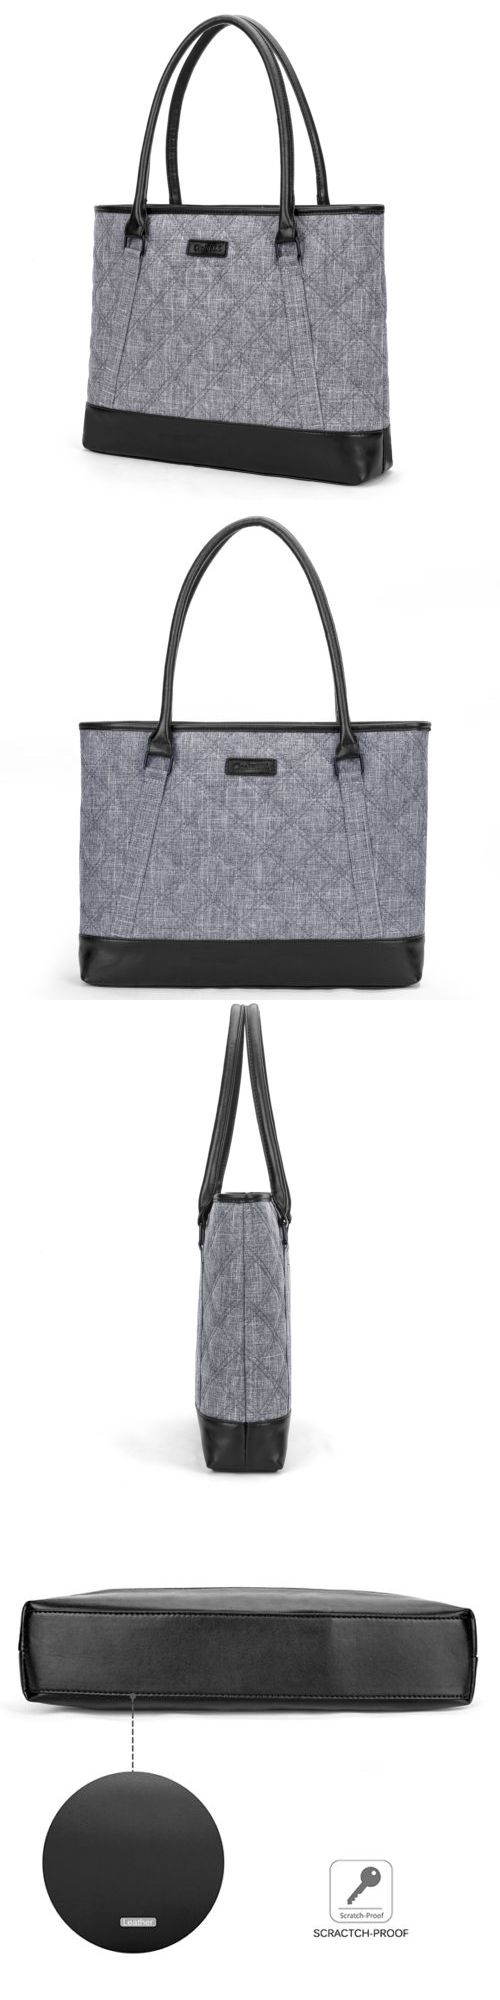 Briefcases and Laptop Bags 169293: 15 15.6 Women Laptop Tote Bag Computer Work Office Business Bag Handbag For Hp -> BUY IT NOW ONLY: $36.99 on eBay!